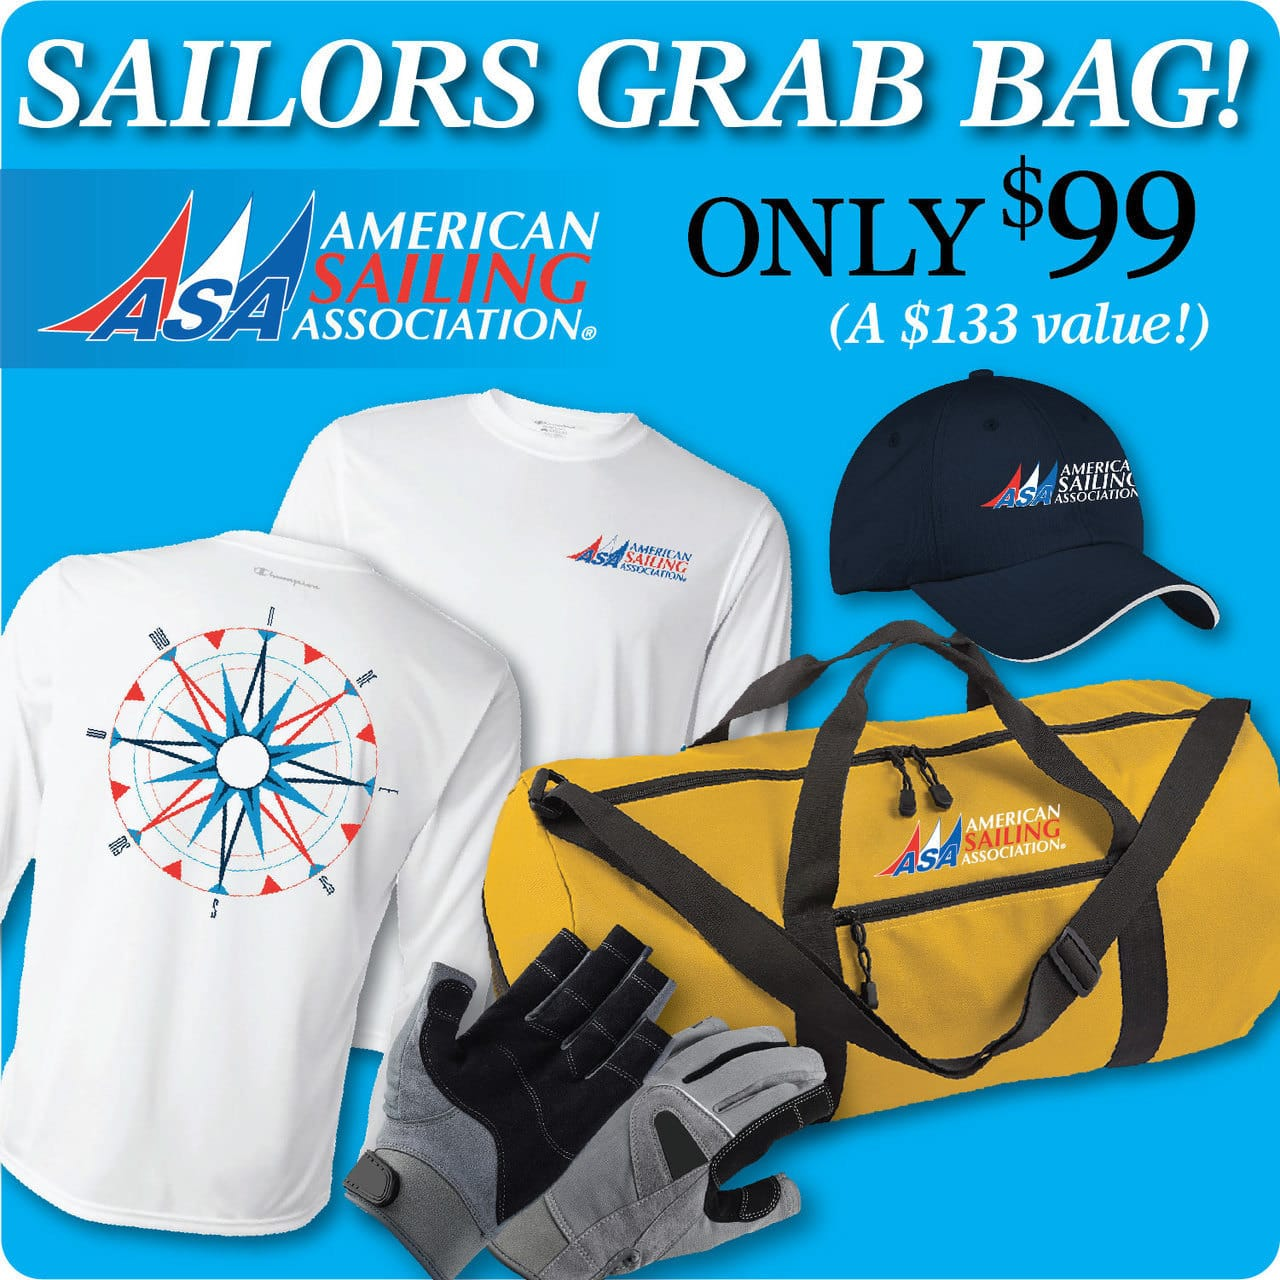 ASA's Sailor Grab Bag